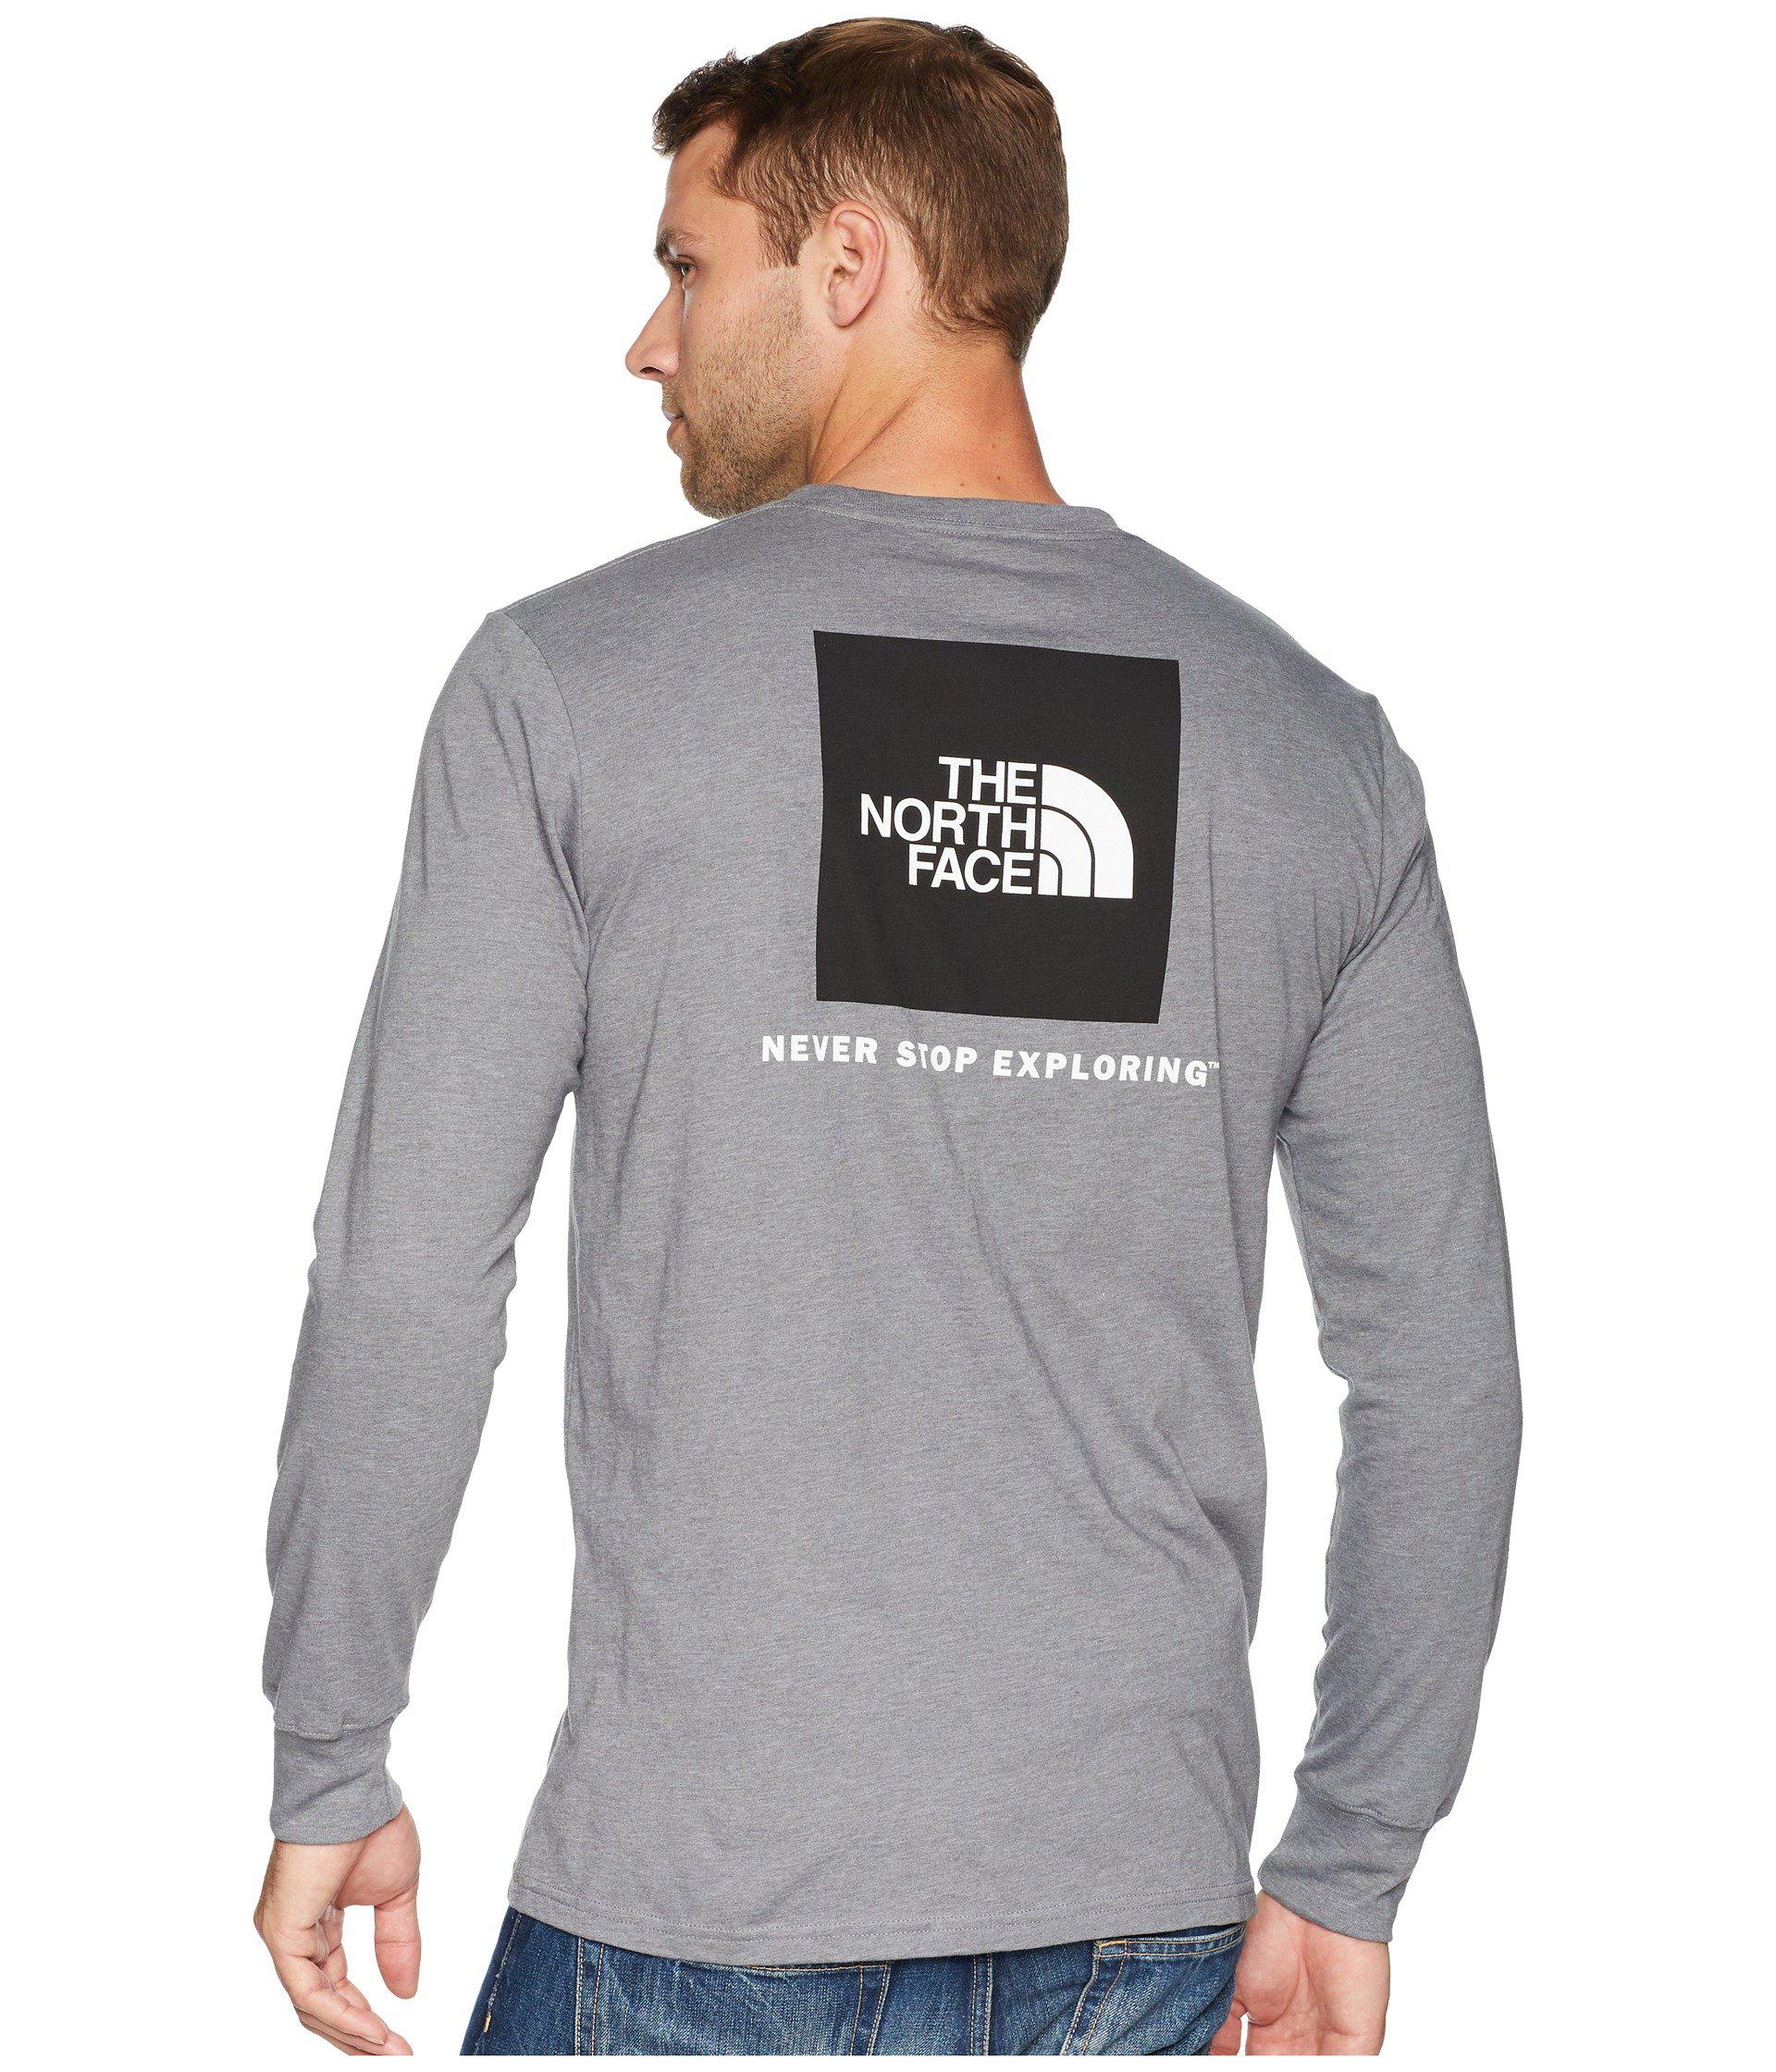 The North Face Men/'s Long Sleeve Red Box Tee